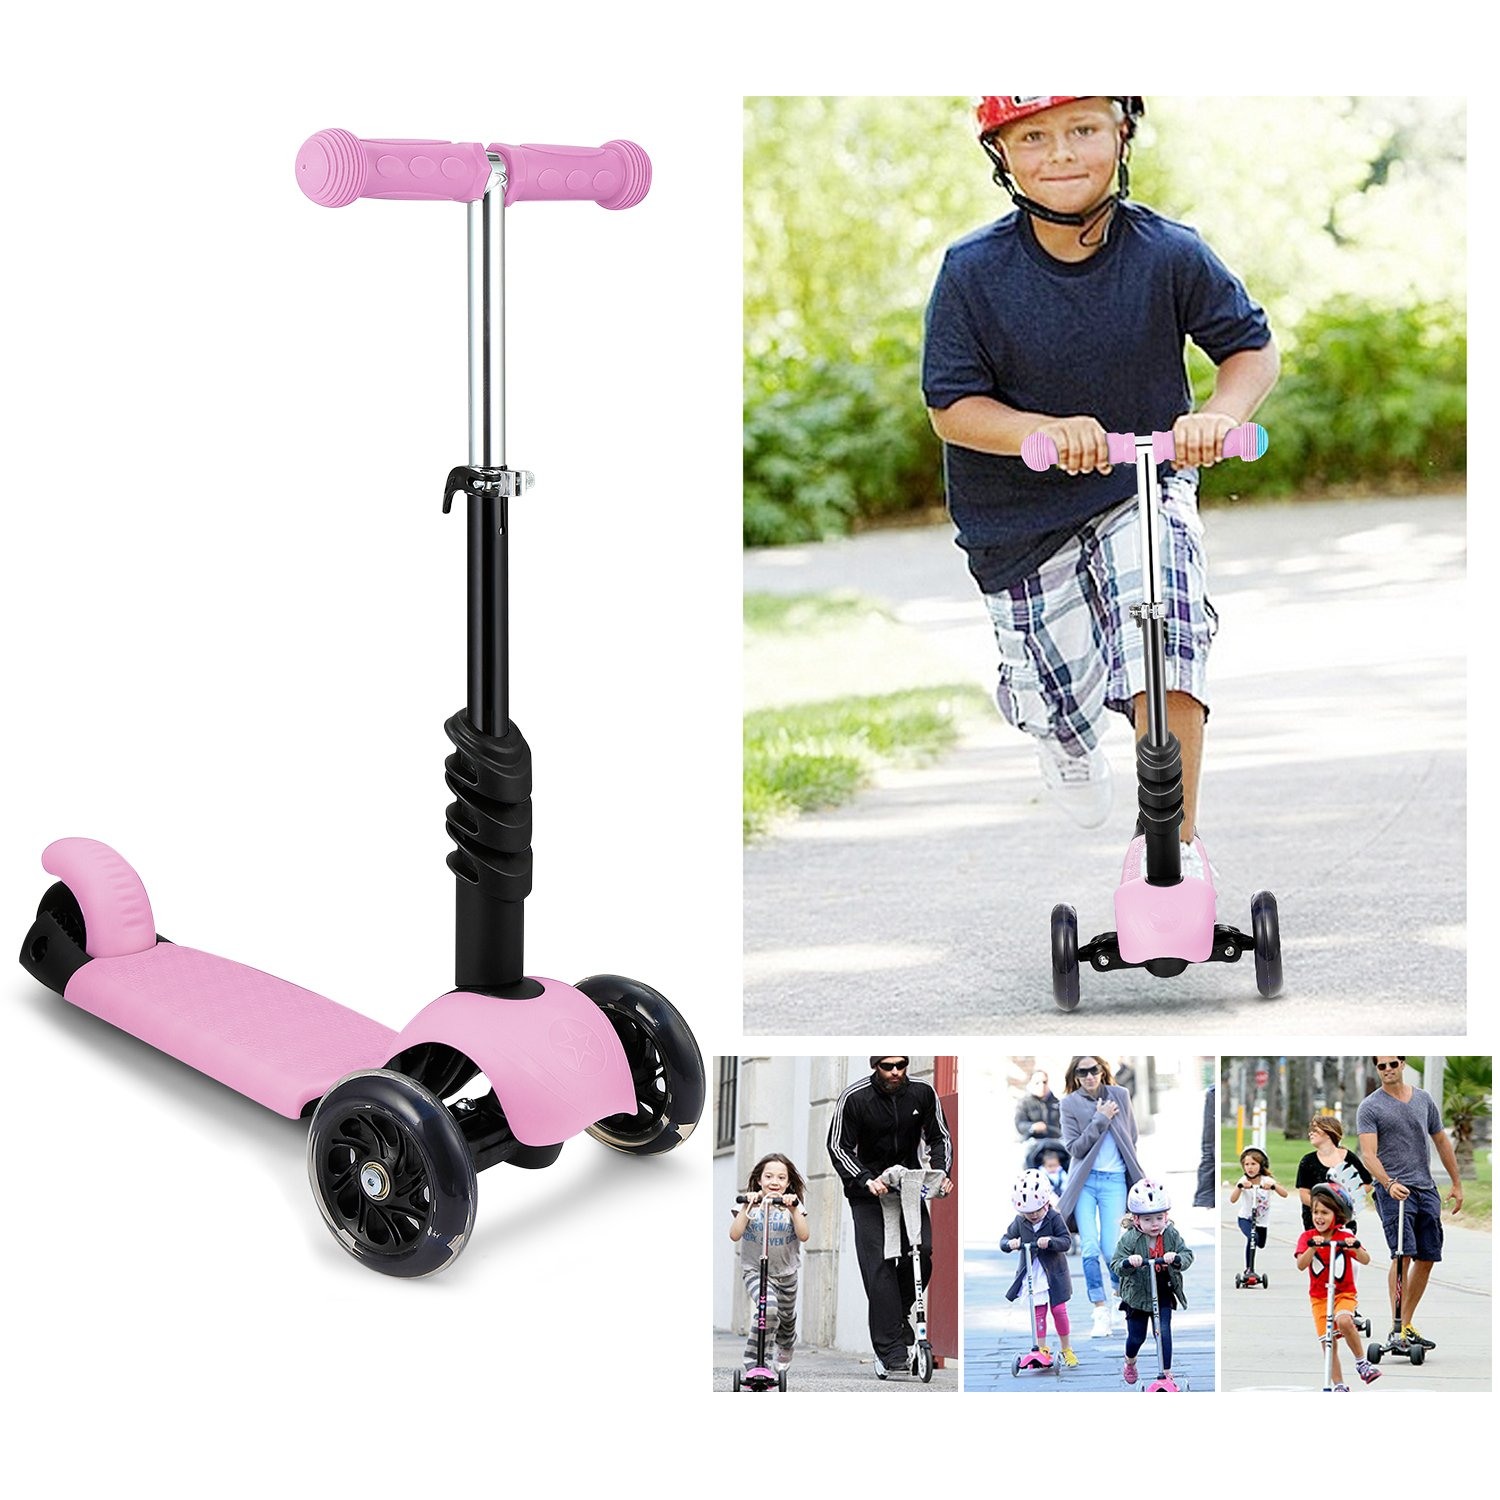 WeSkate Kids Children Scooter 3 Wheel Kick Scooter with Adjustable Height Removable /& Adjustable Seat T-Handlebar and LED Light Up Wheel for Children Boys Girls 2-6Years Old